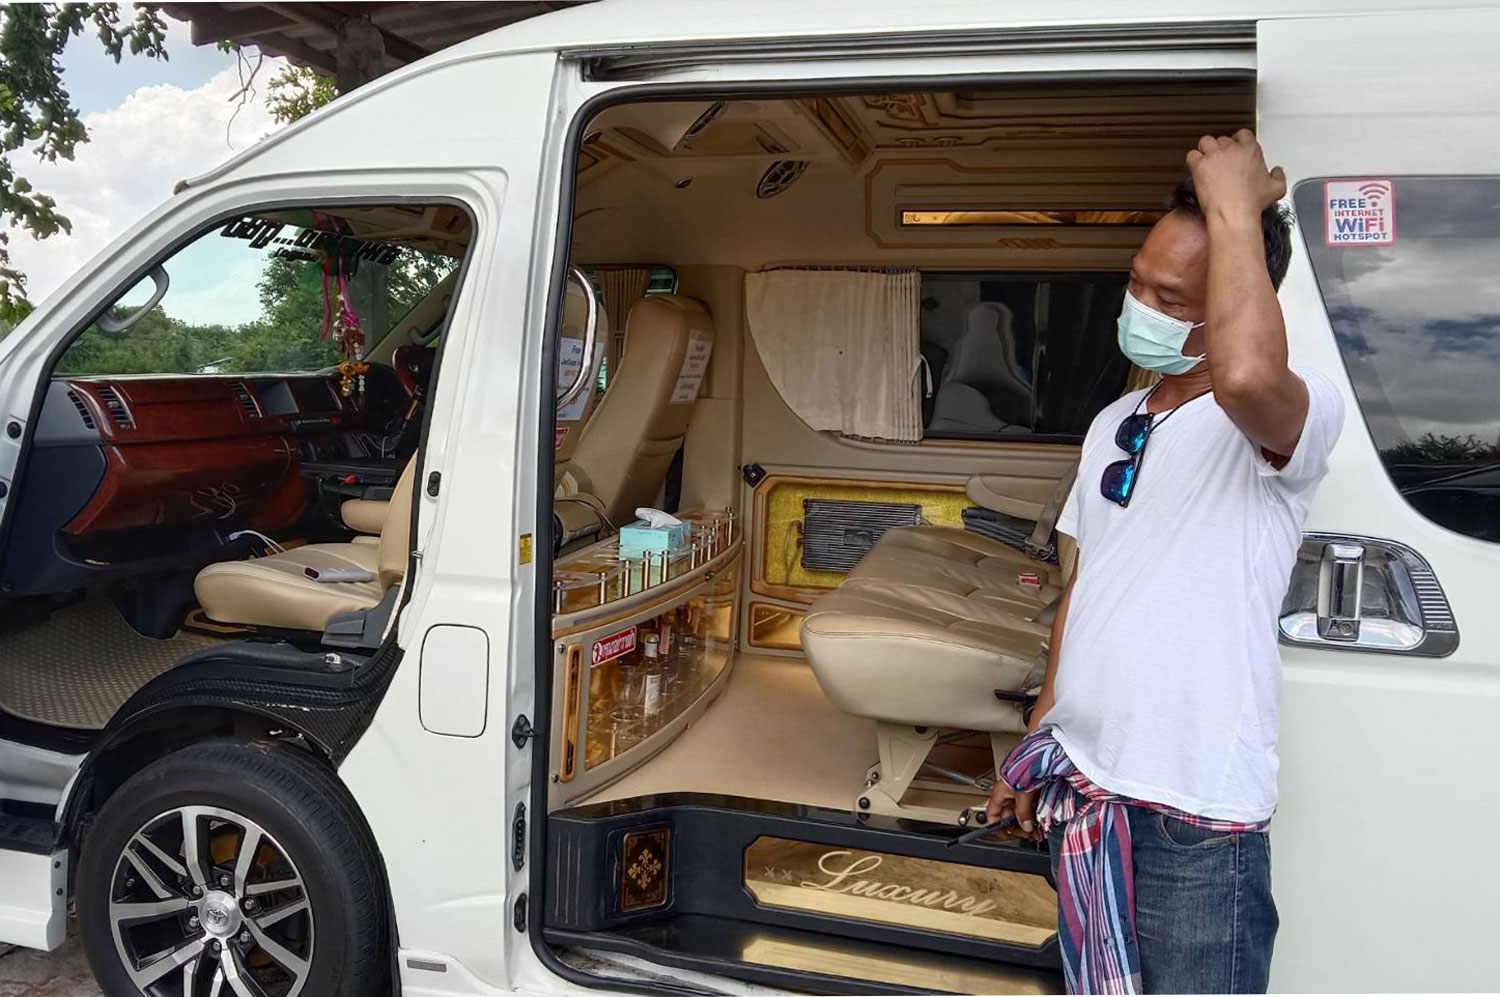 Punnawit Jaenlue, 41, a tour van operator in Nakhon Ratchasima, cleans his vehicle - but he has no customers, with interprovincial travel discouraged by the government's Covid-19 control measures. (Photo: Prasit Tangprasert)